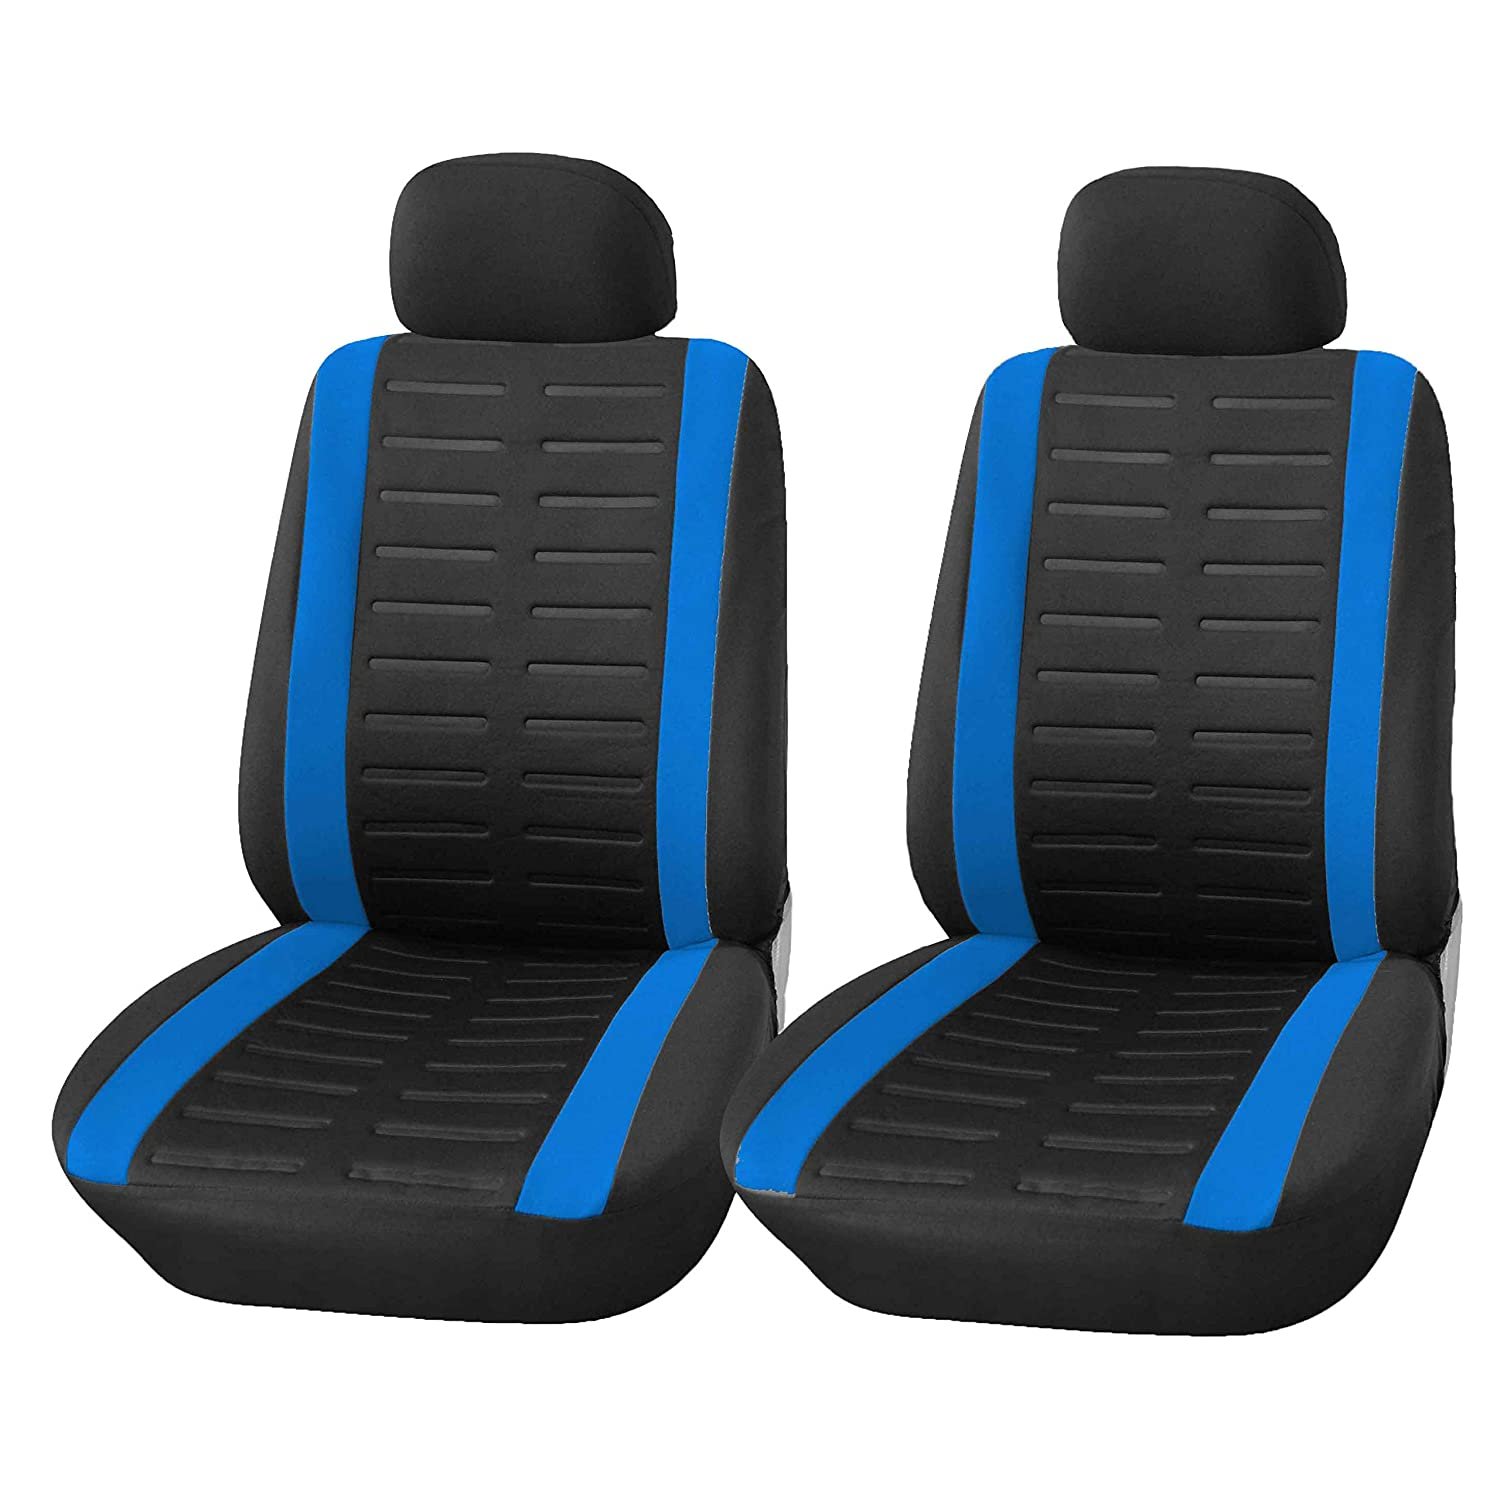 Phenomenal Upgrade4Cars Car Seat Covers Full Set In Blue And Black Pabps2019 Chair Design Images Pabps2019Com